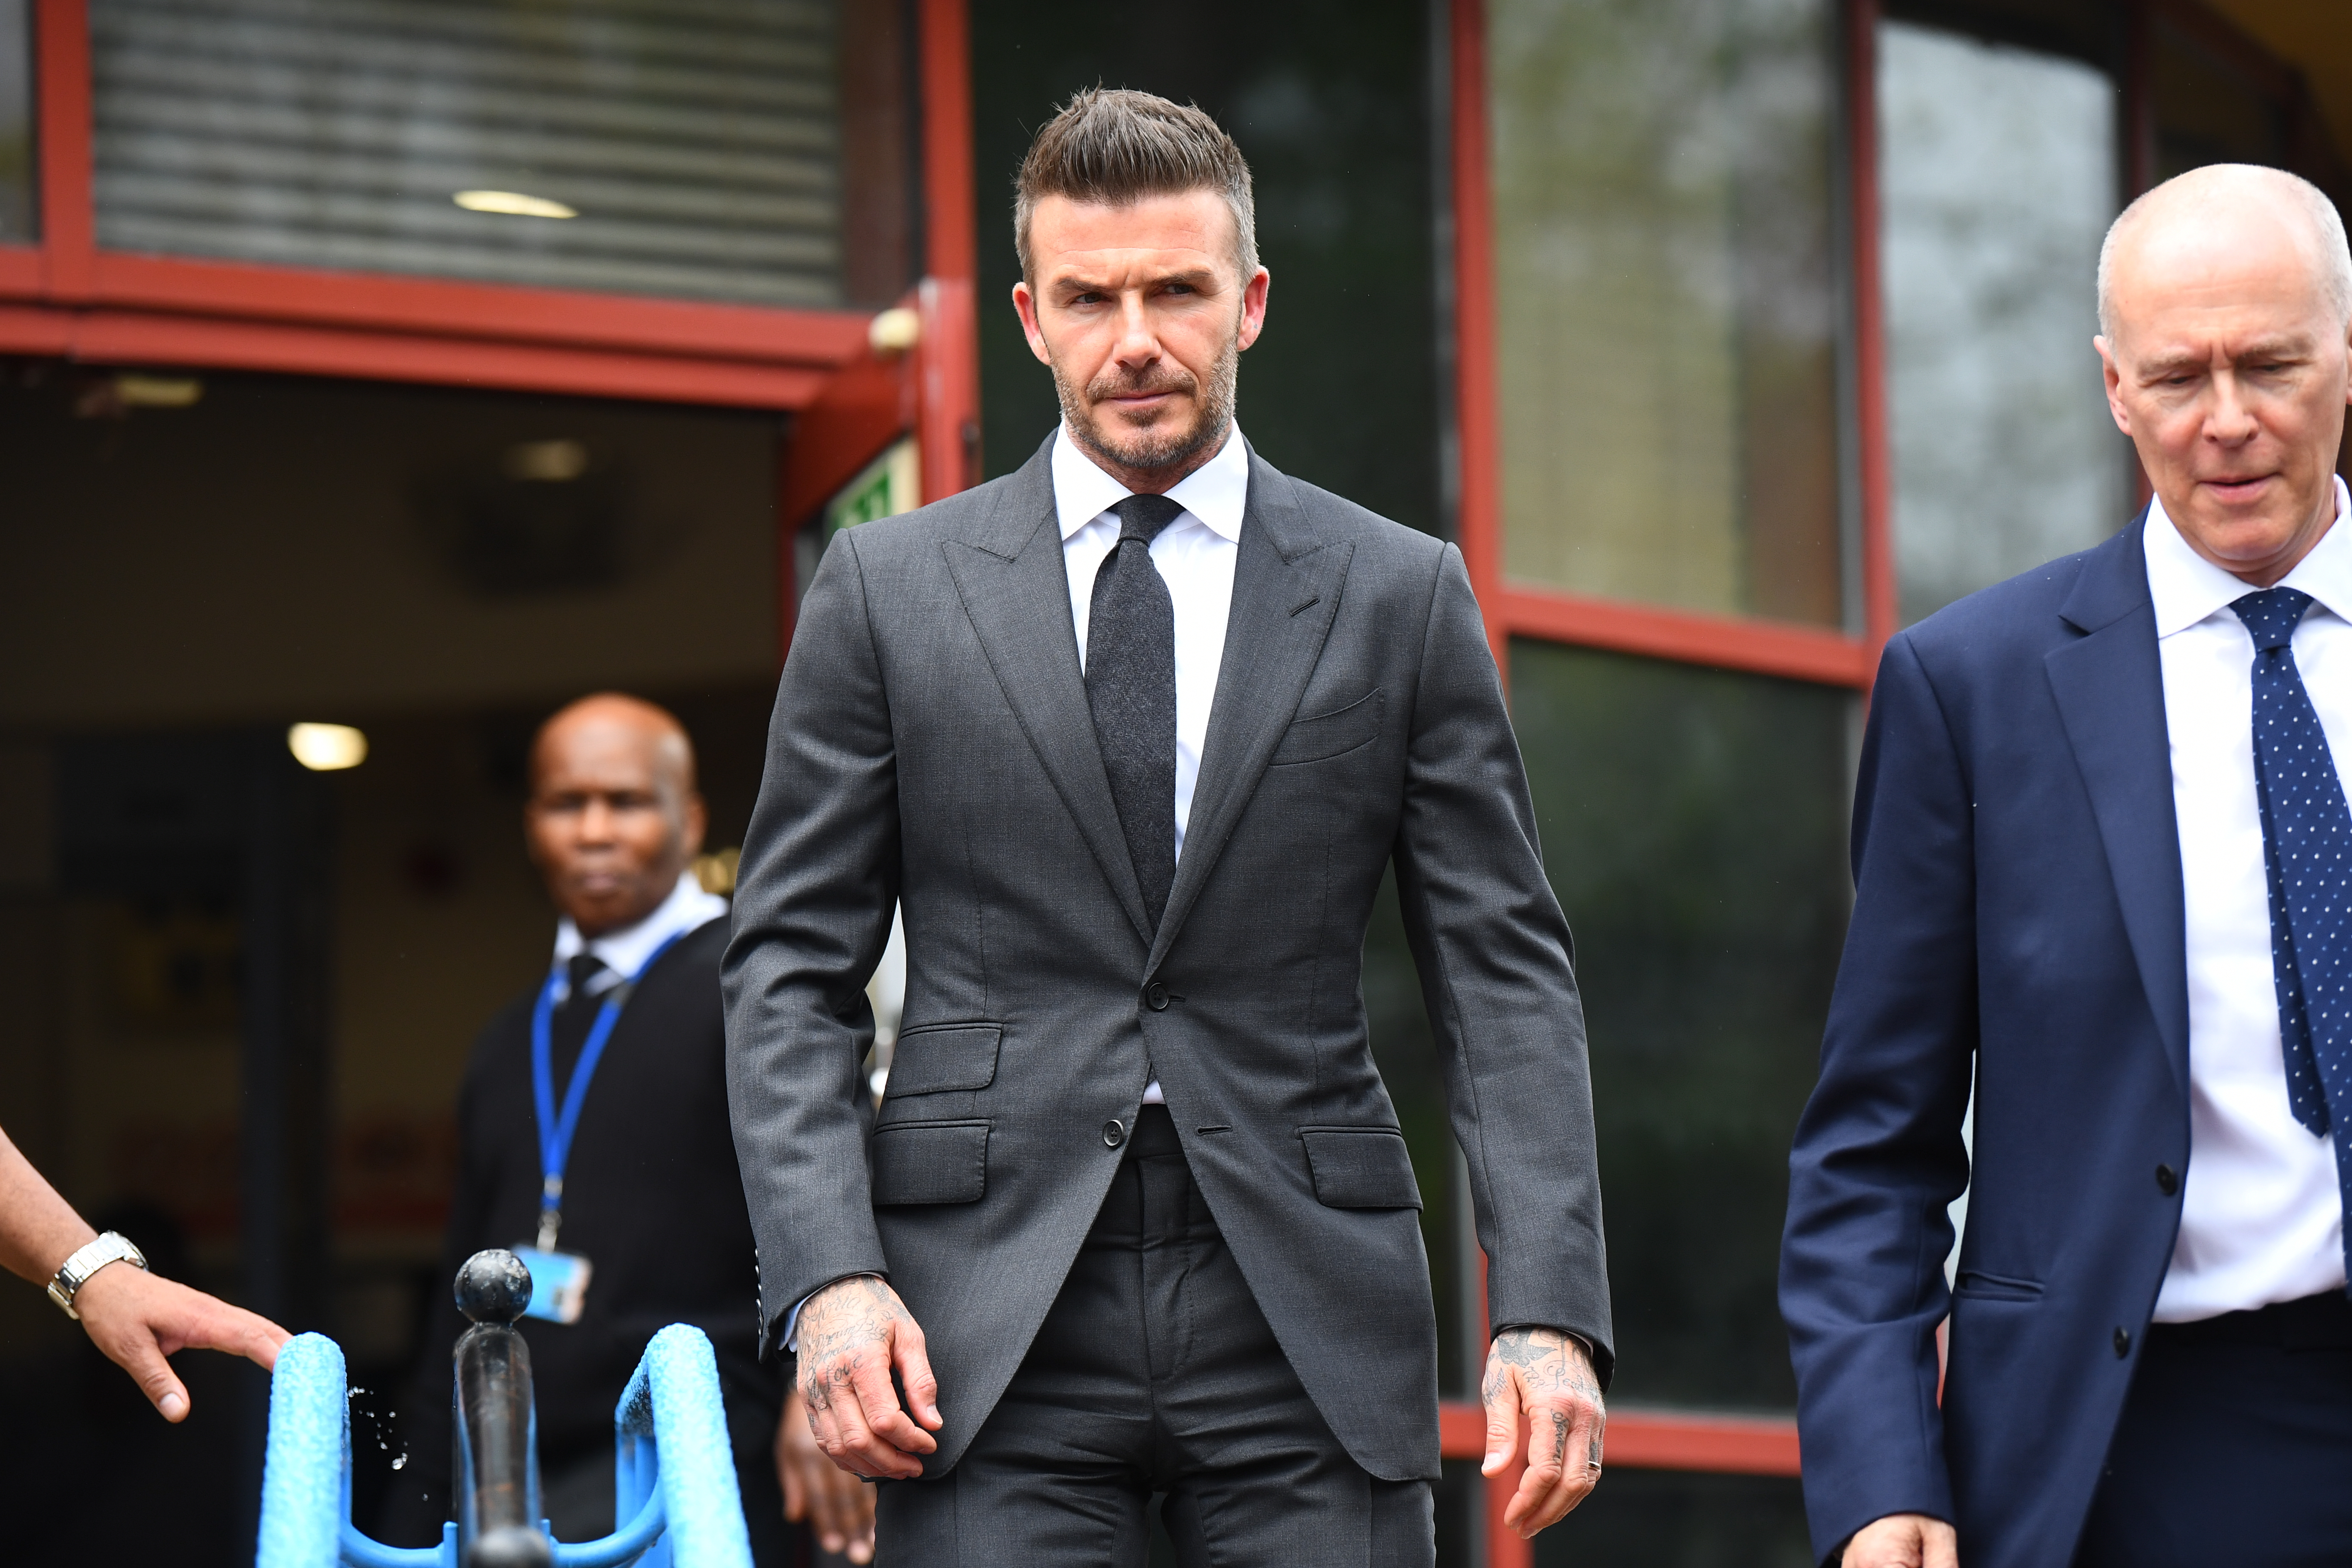 Beckham was given six points on his licence and banned from driving for six months. Credit: PA